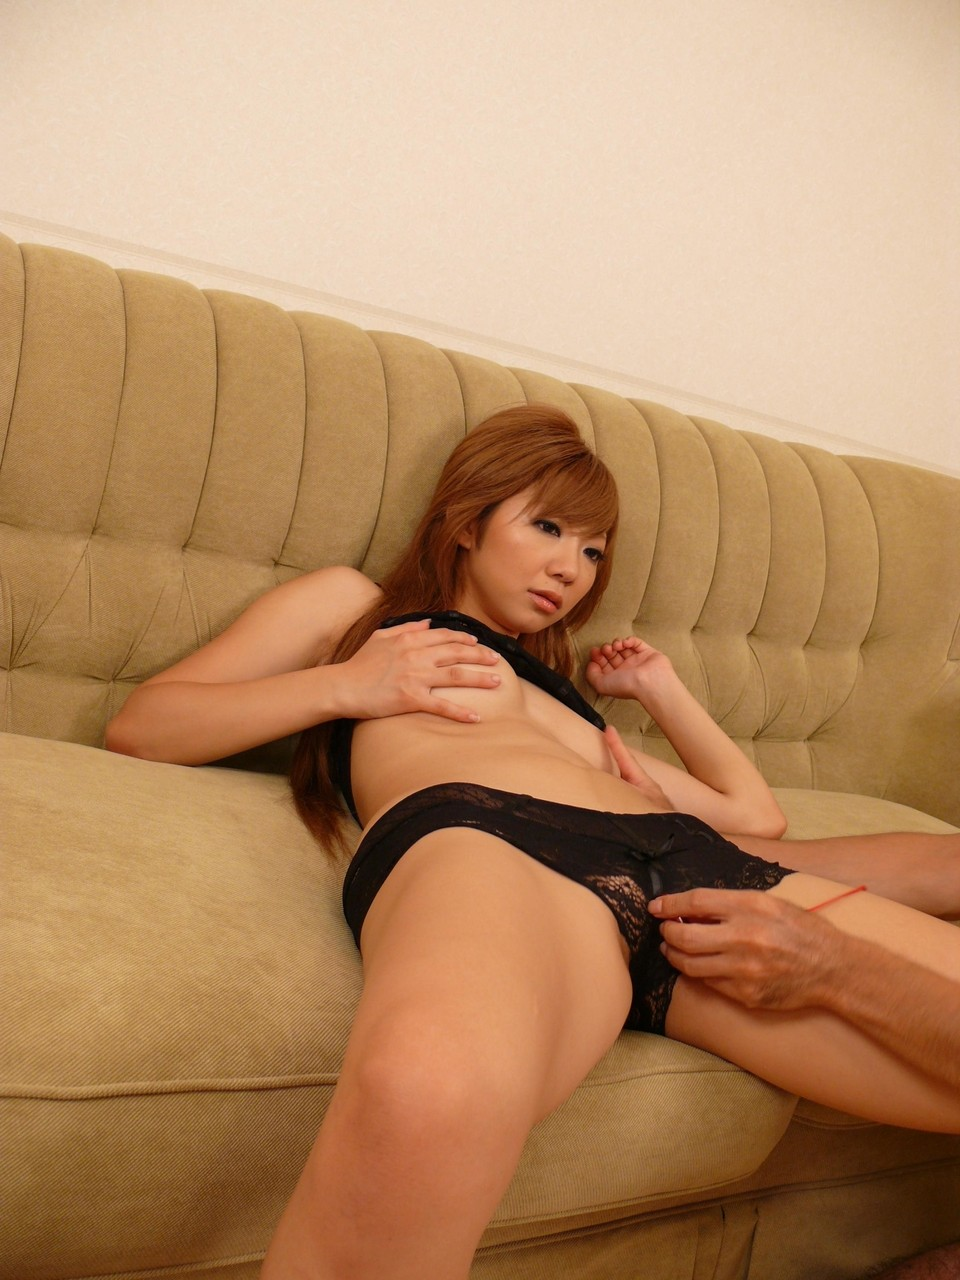 Japans chick Rui Haduki finds herself being anally and vaginally masturbated 色情照片 #422297094 | Japan HD XXX, RUI HADUKI,, 手机色情